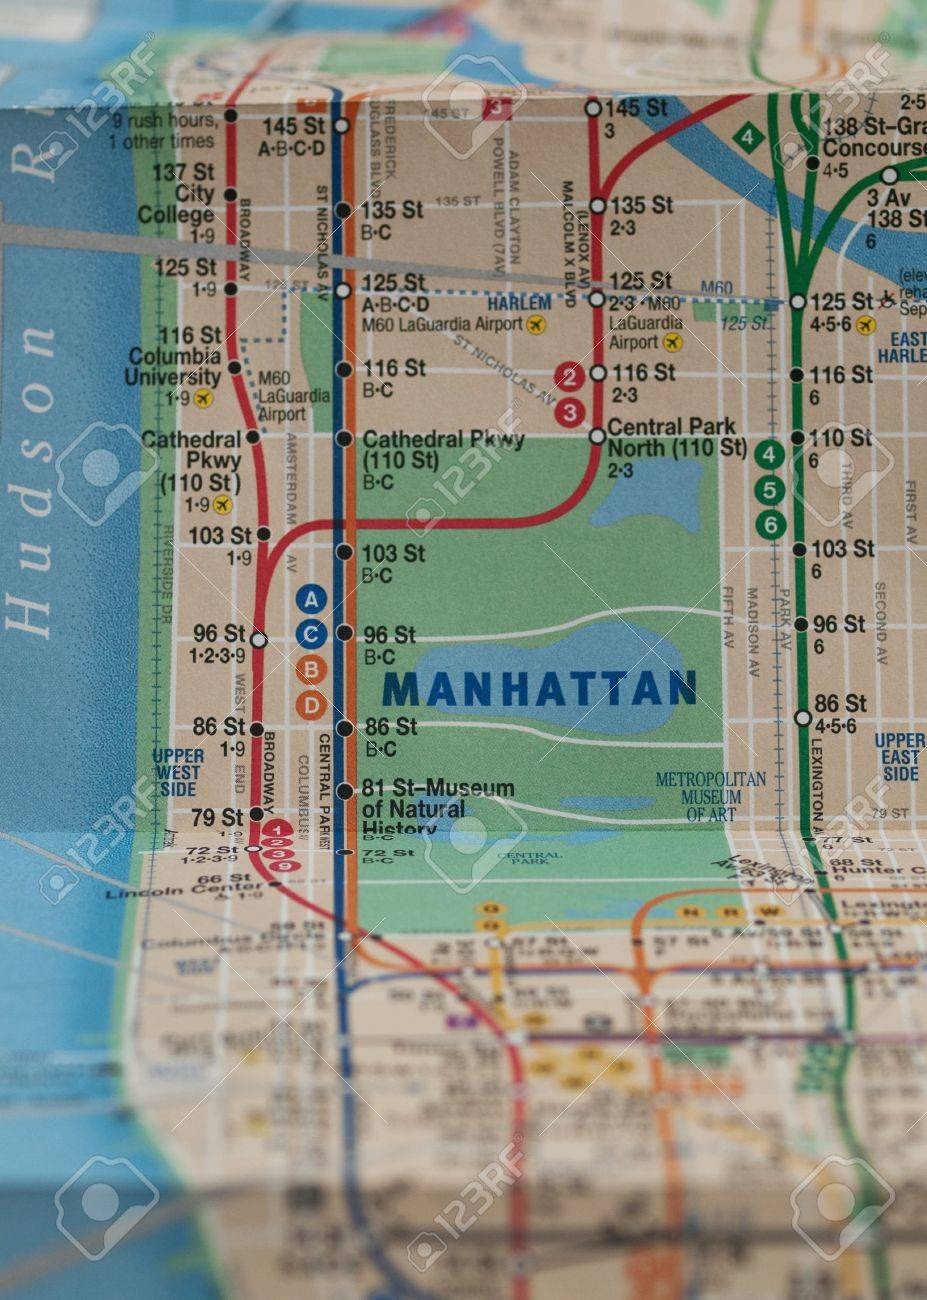 Nyc Subway Map Laguardia.Folded New York City Subway Map With Selective Focus On Central